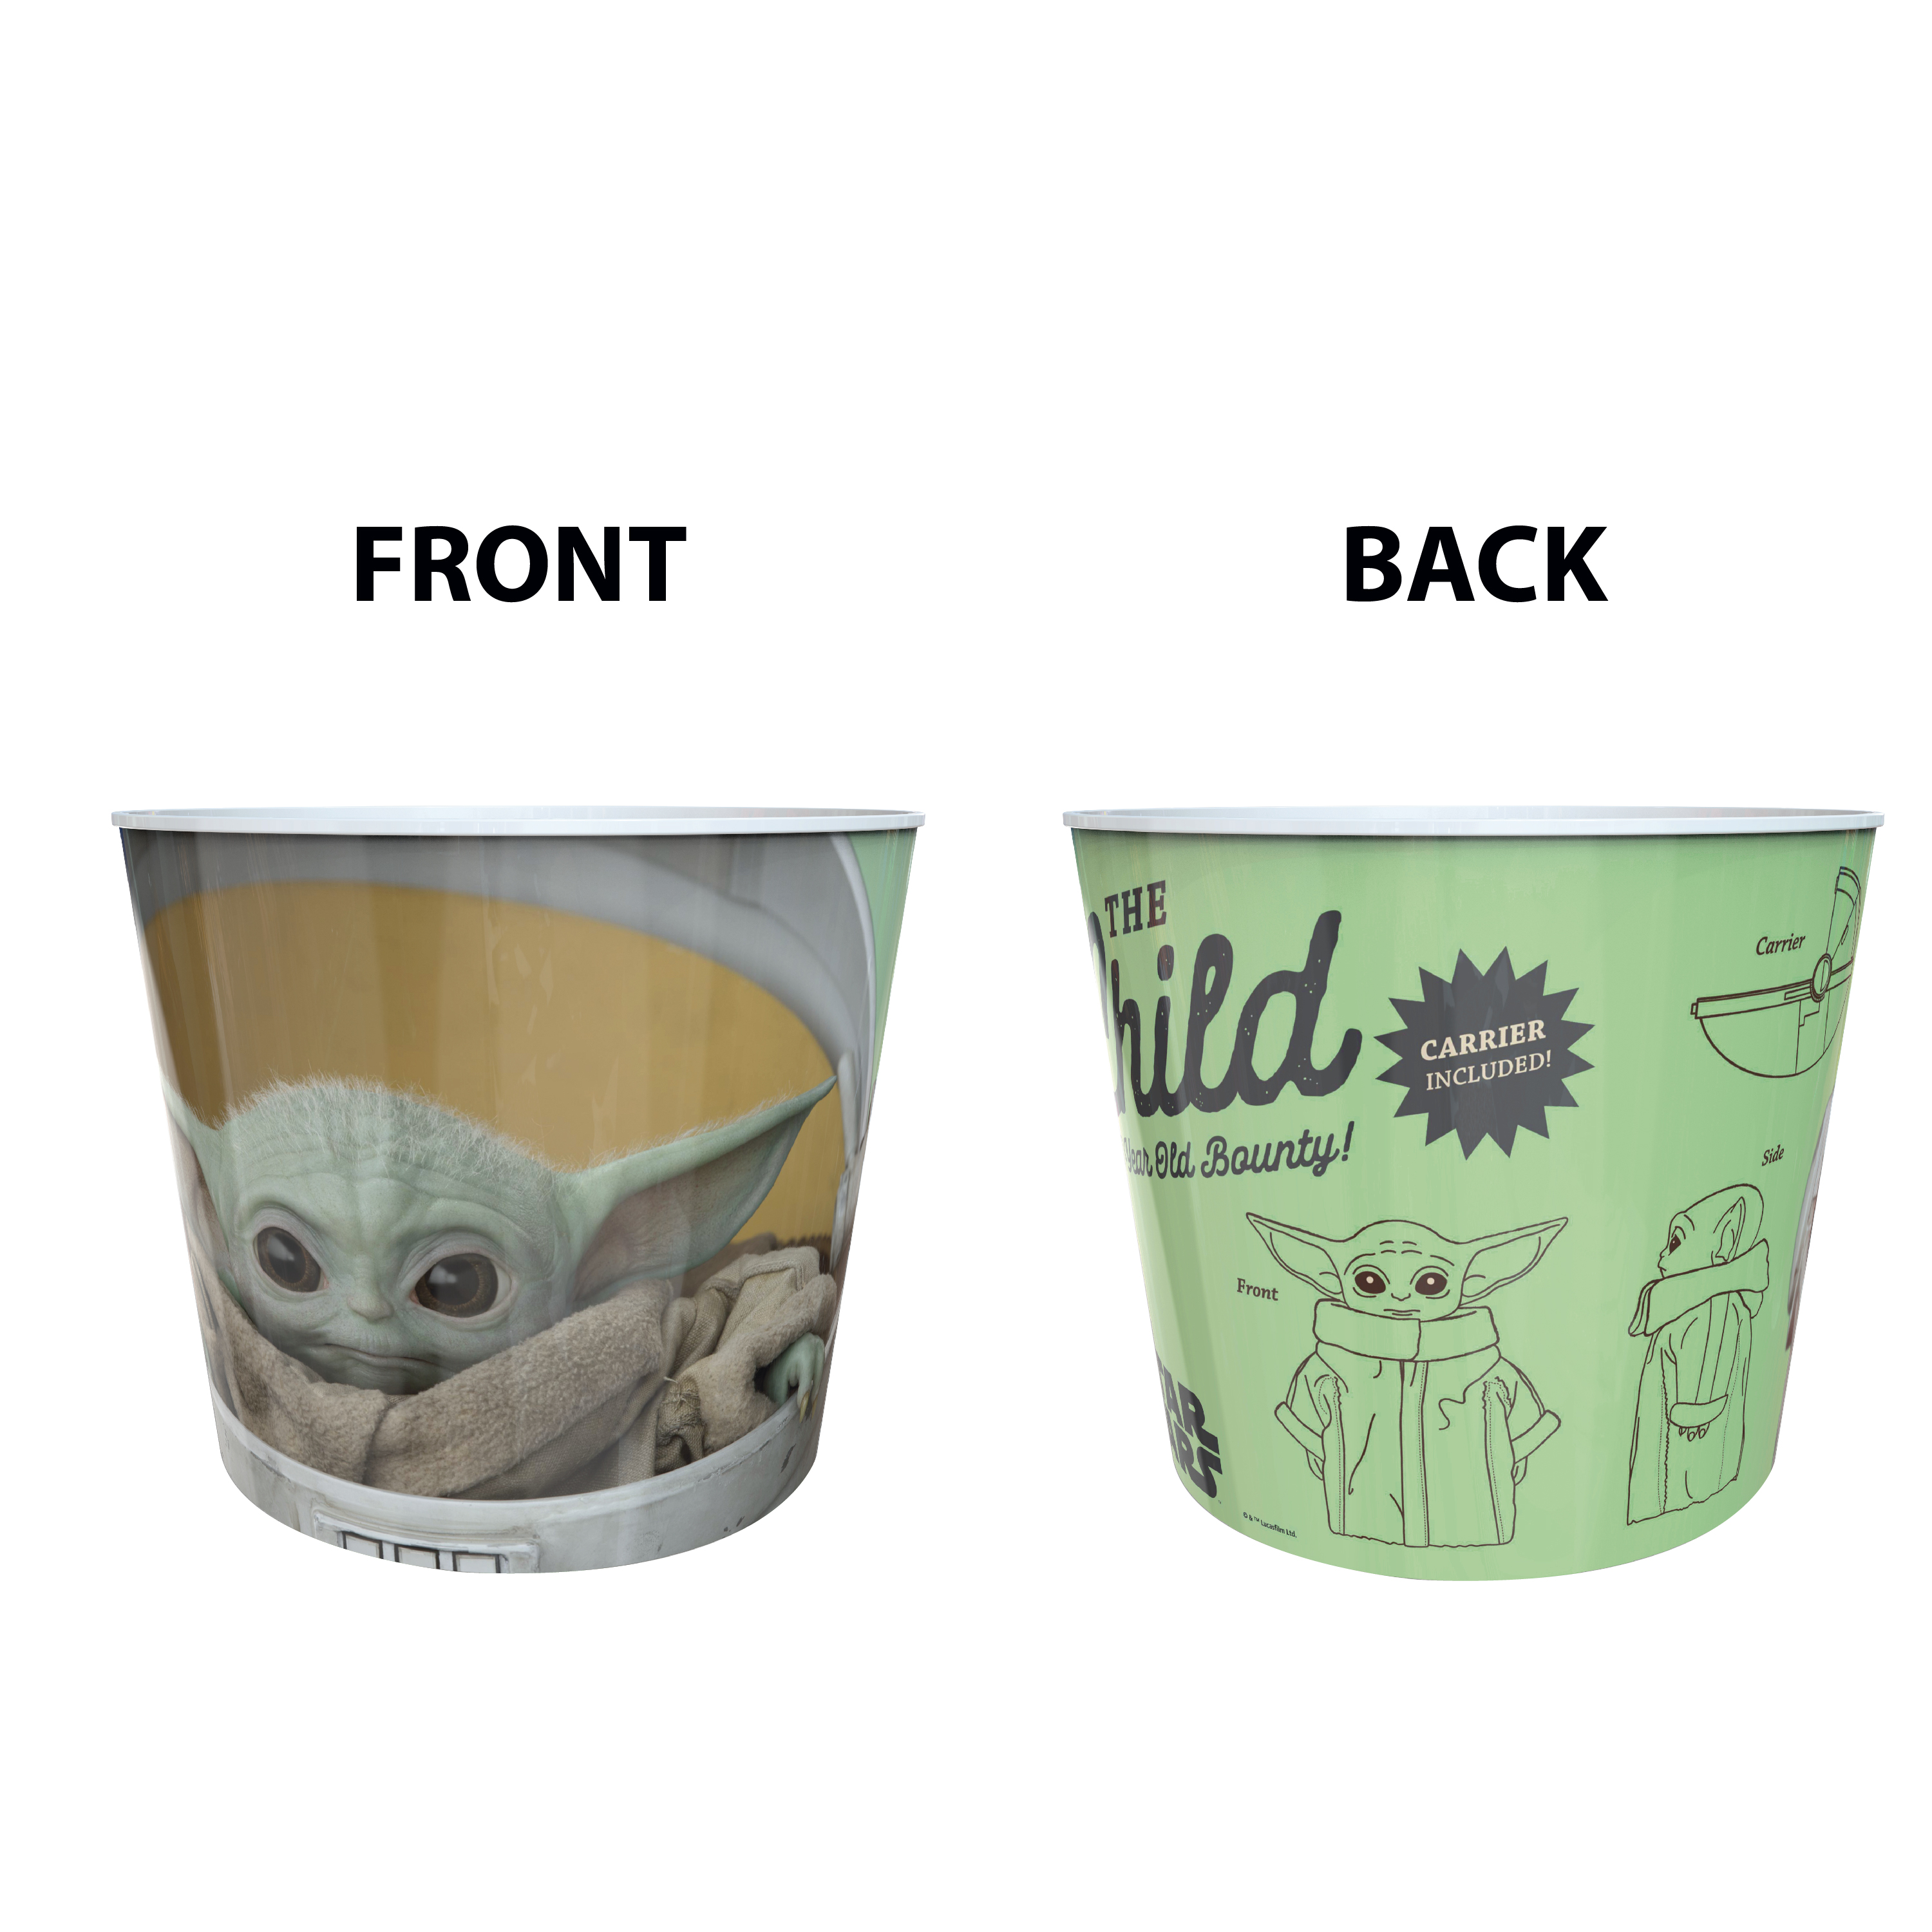 Star Wars: The Mandalorian Plastic Popcorn Container and Bowls, The Child (Baby Yoda), 5-piece set slideshow image 10